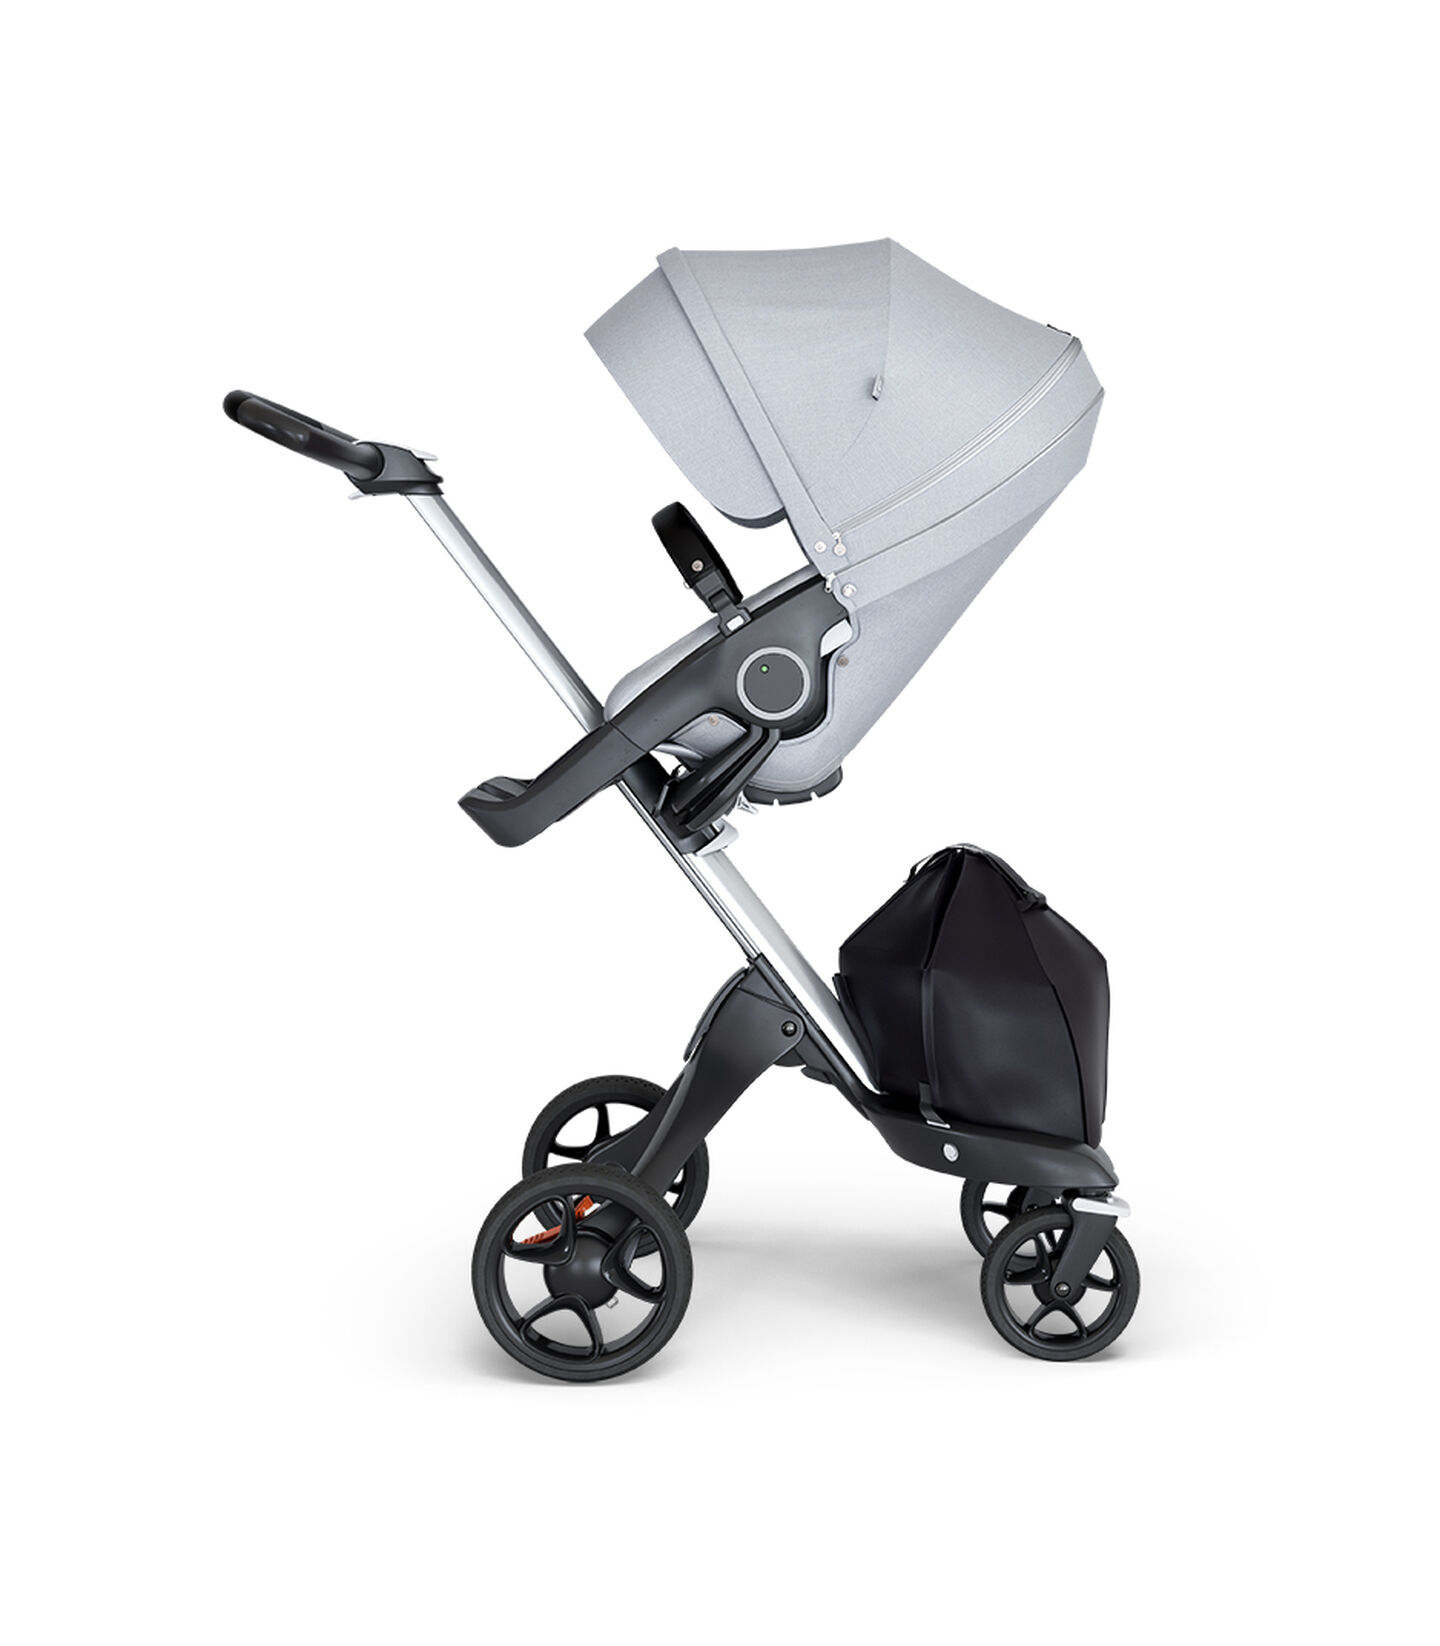 Stokke® Xplory® 6 Silver Chassis - Black Handle Grey Melange, Gris Melange, mainview view 2